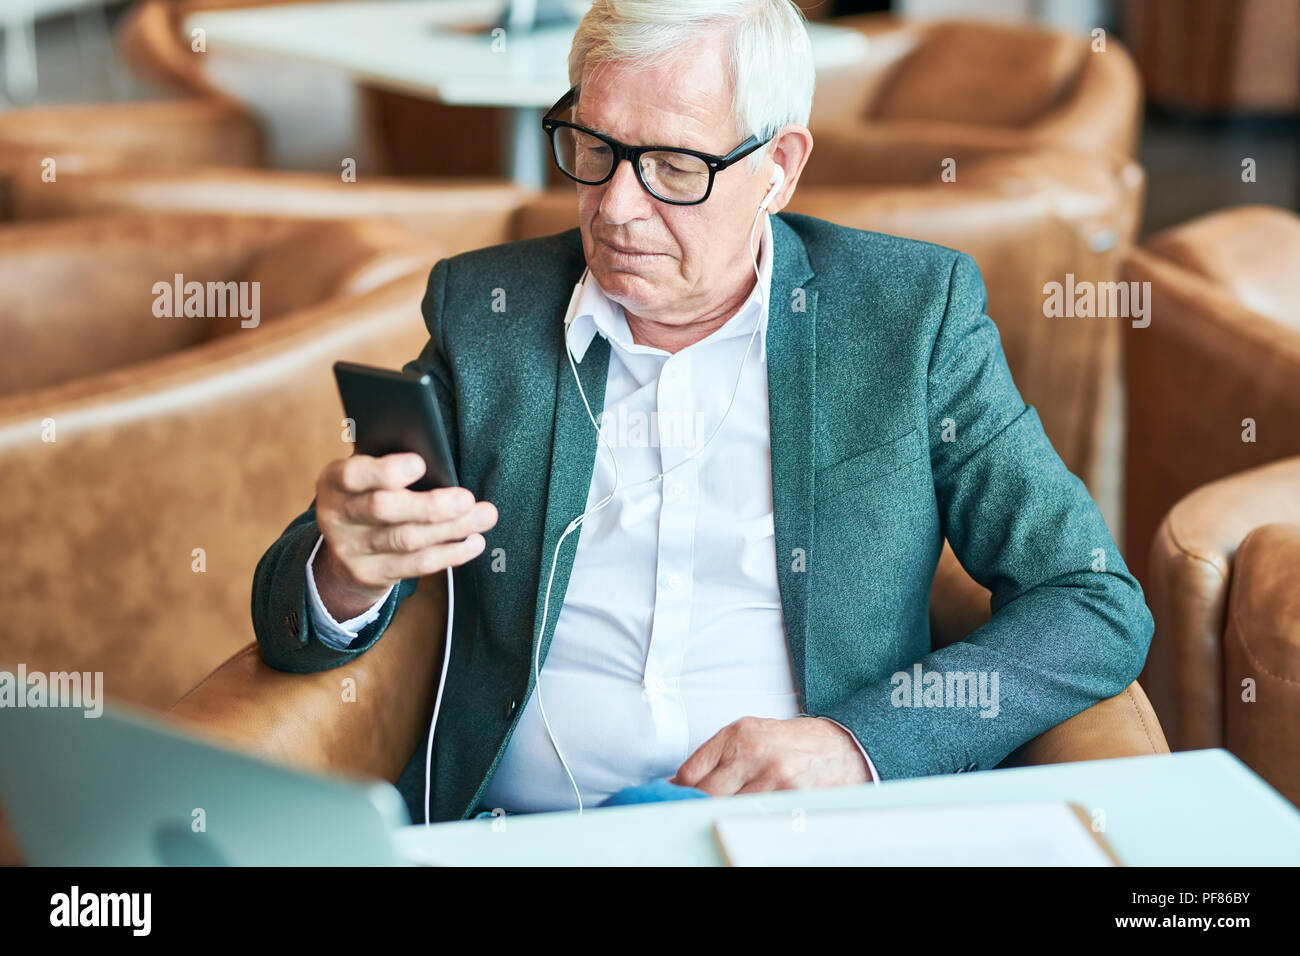 Contemporary Senior Man Using Smartphone in Cafe Stock Photo